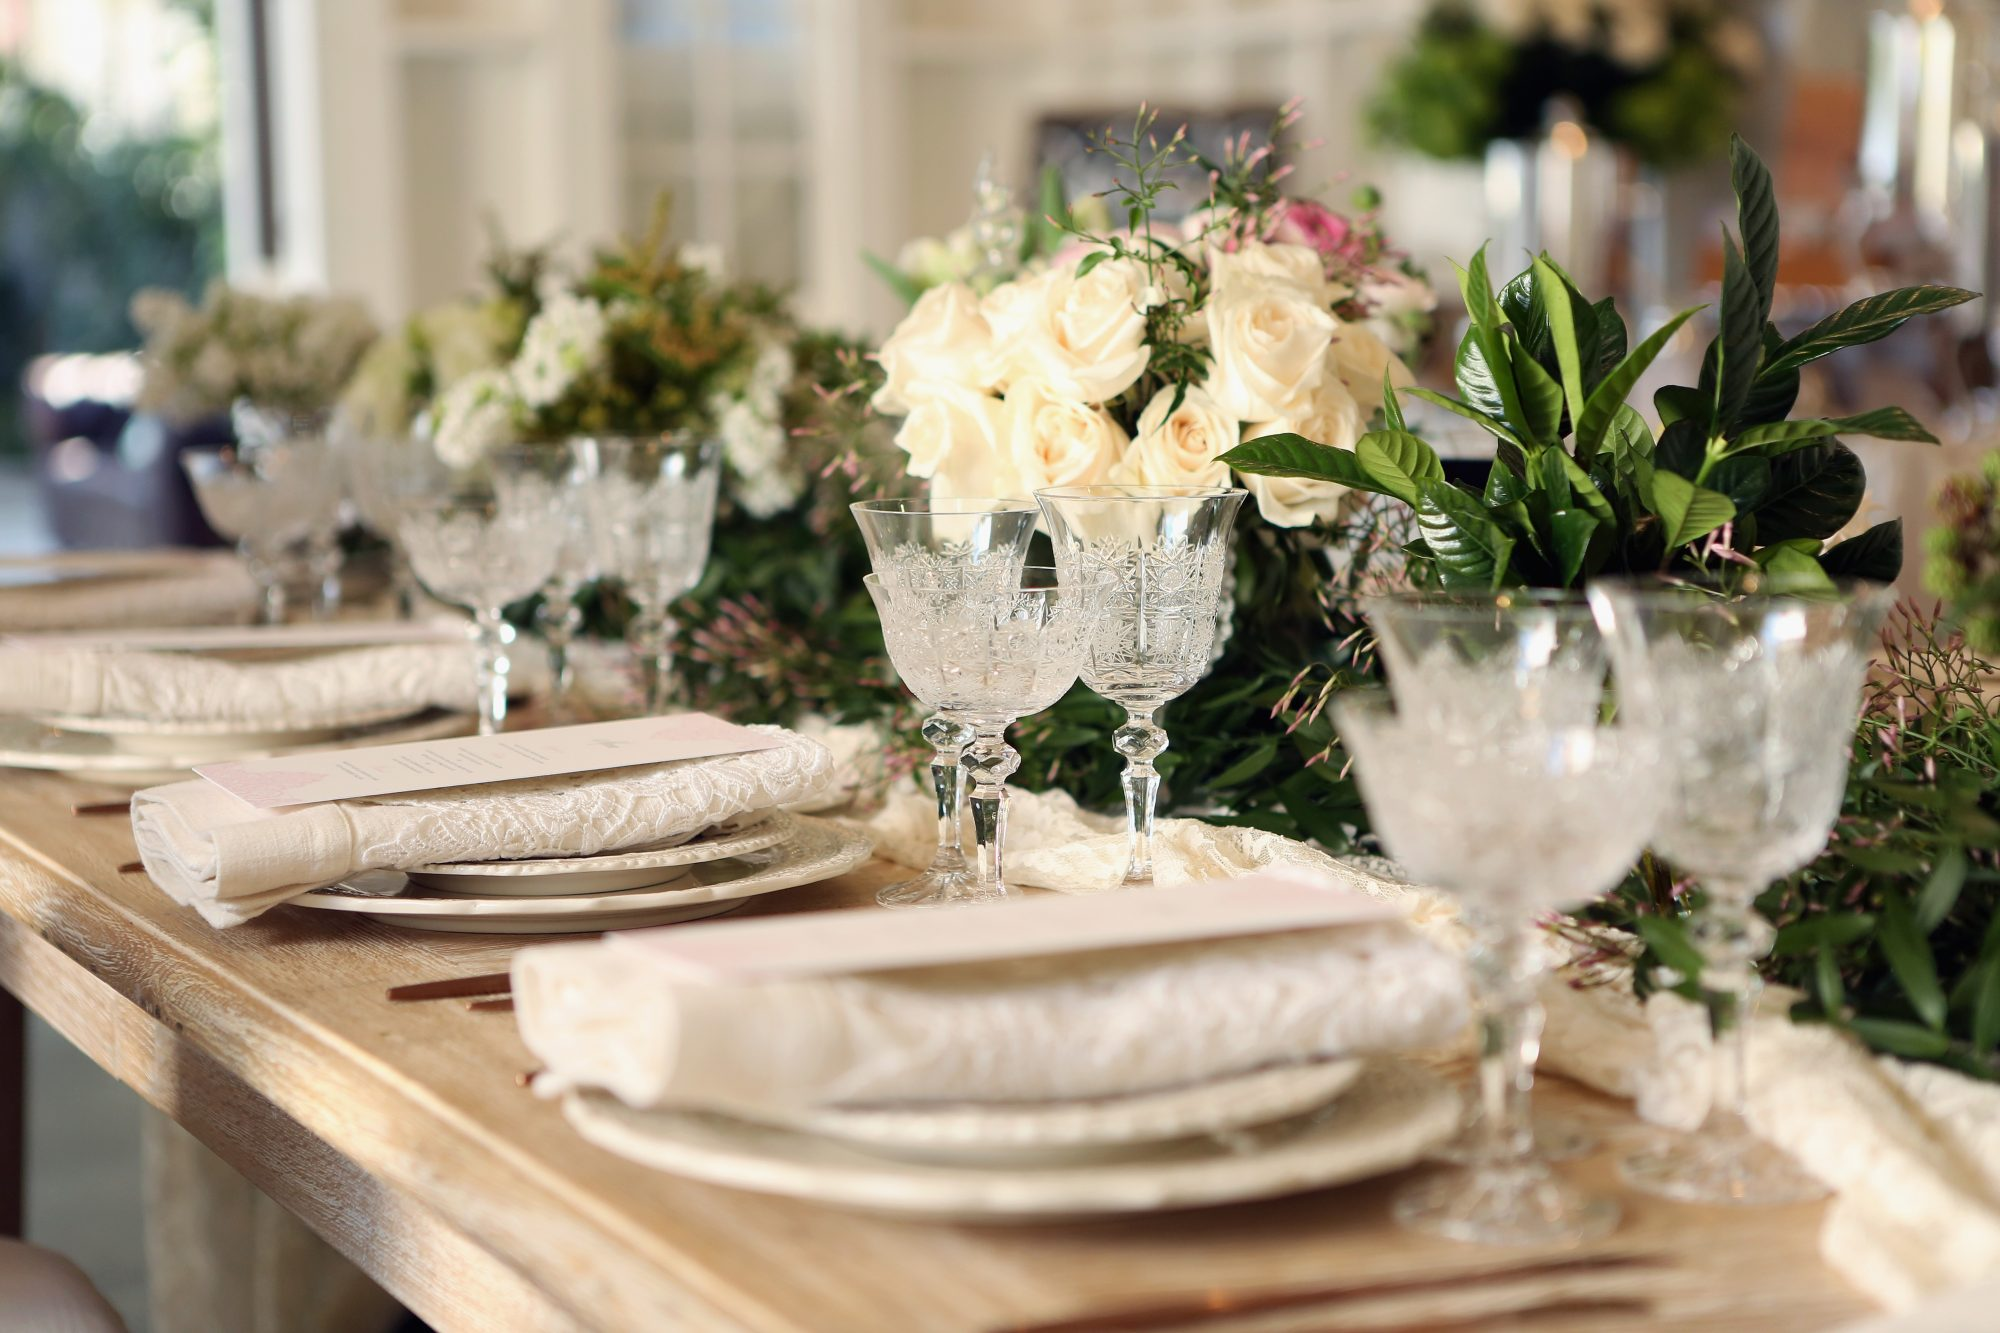 Wedding Registry Table Setting